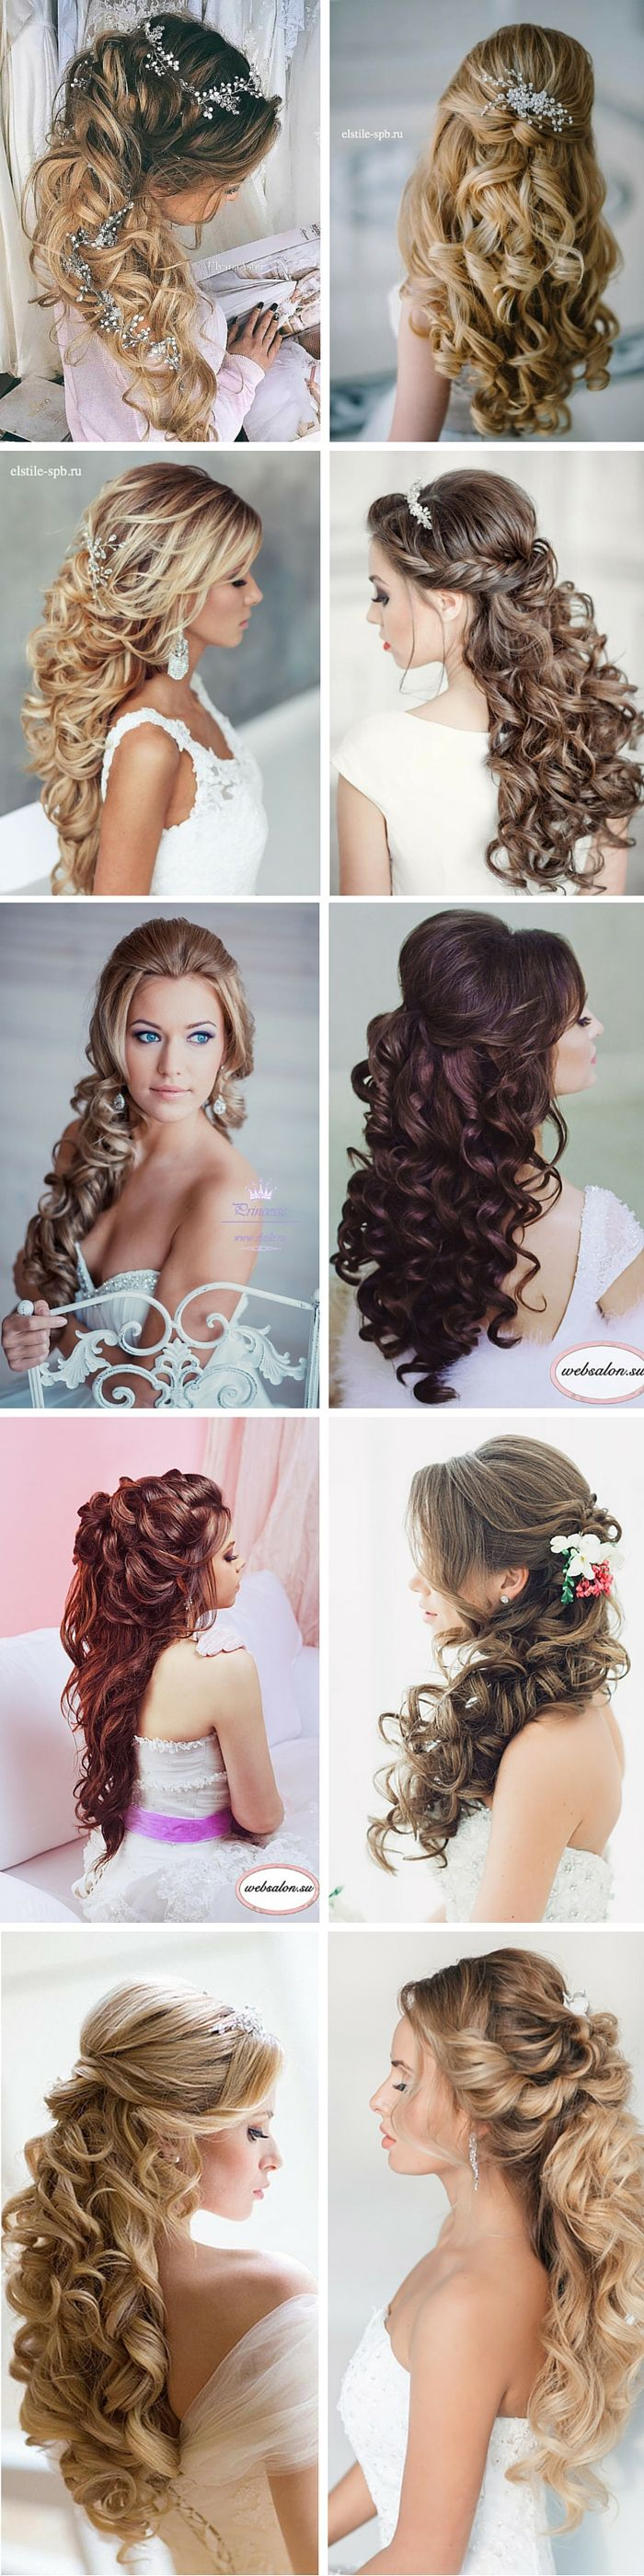 Wedding Hairstyle For Long Hair Peinados Weddingtrend Home Of Bridal Trends The Hottest New Wedding Trends Straight From The Experts